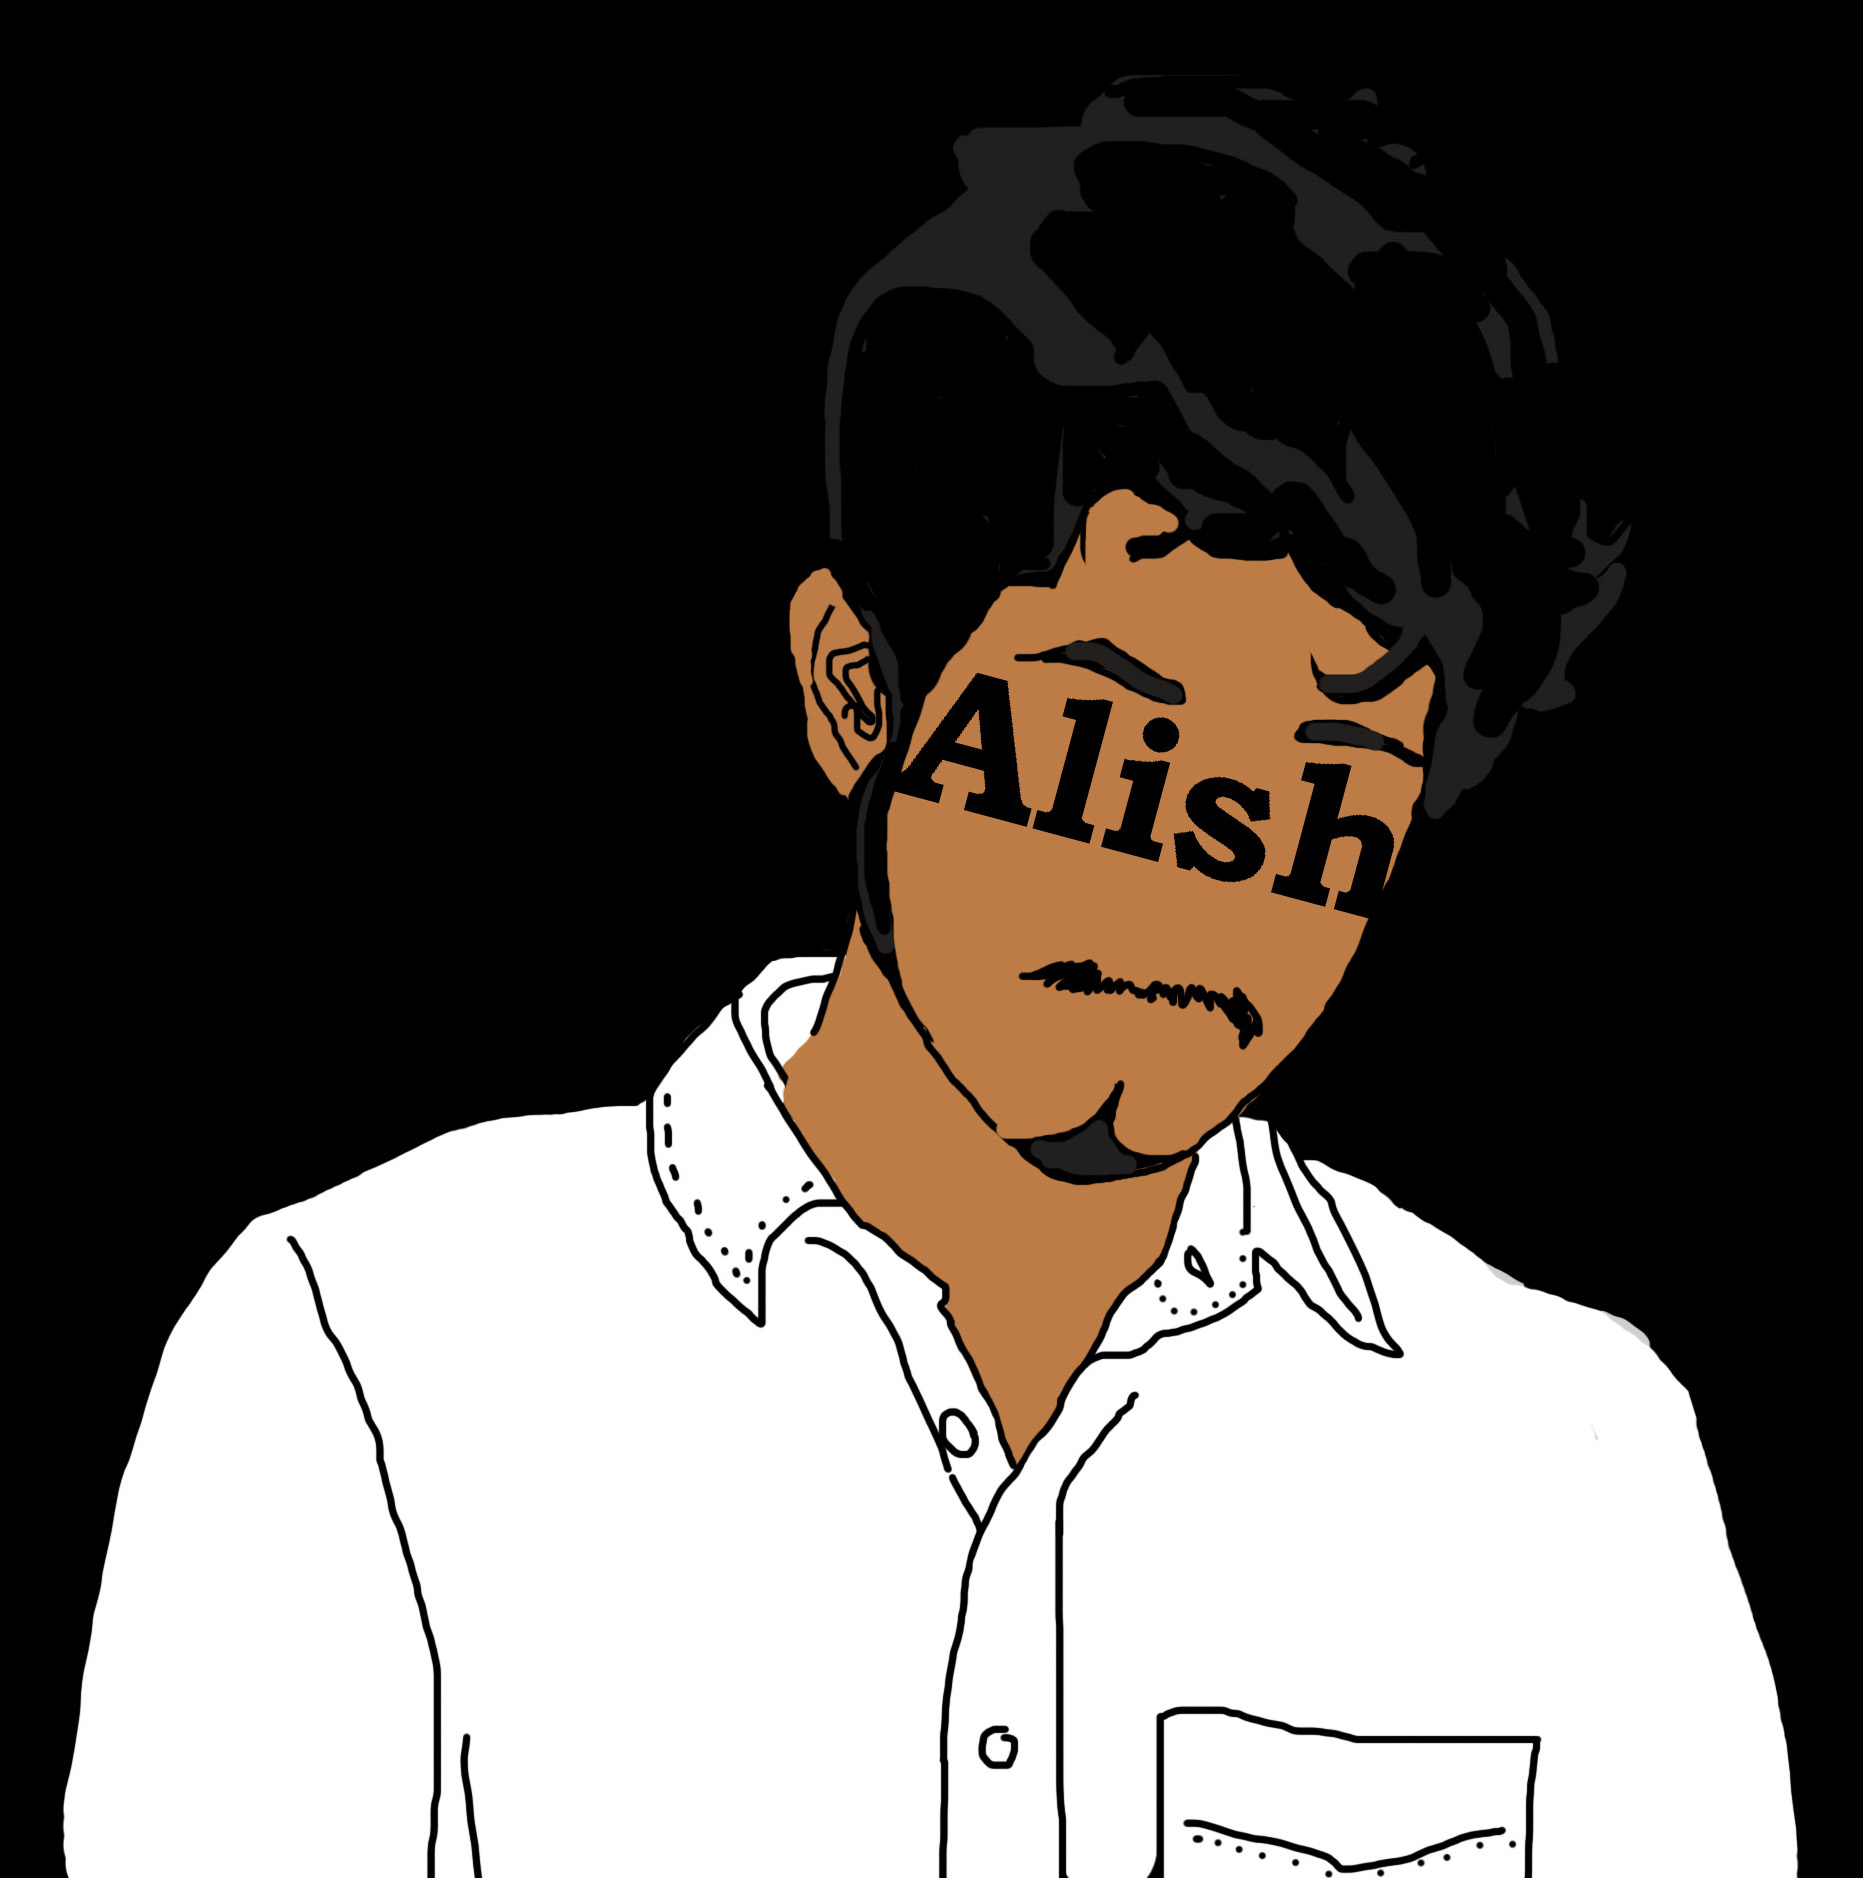 Alish Dahal - Alish Dahal is a Los Angeles-based comedy writer from Nepal. He writes screenplays, short stories and performs at live storytelling events. He is also a quadruple threat, equipt with the optimism of Kimmy Schmidt, the ambition of Frank Underwood, the humor of Ellen Degeneres, and the fashion sense of Donald Glover. He pours his unique style over the pages of his writing, just like he pours soy sauce over steaming bowls of Pesto and Linguine (I said he was unique!)